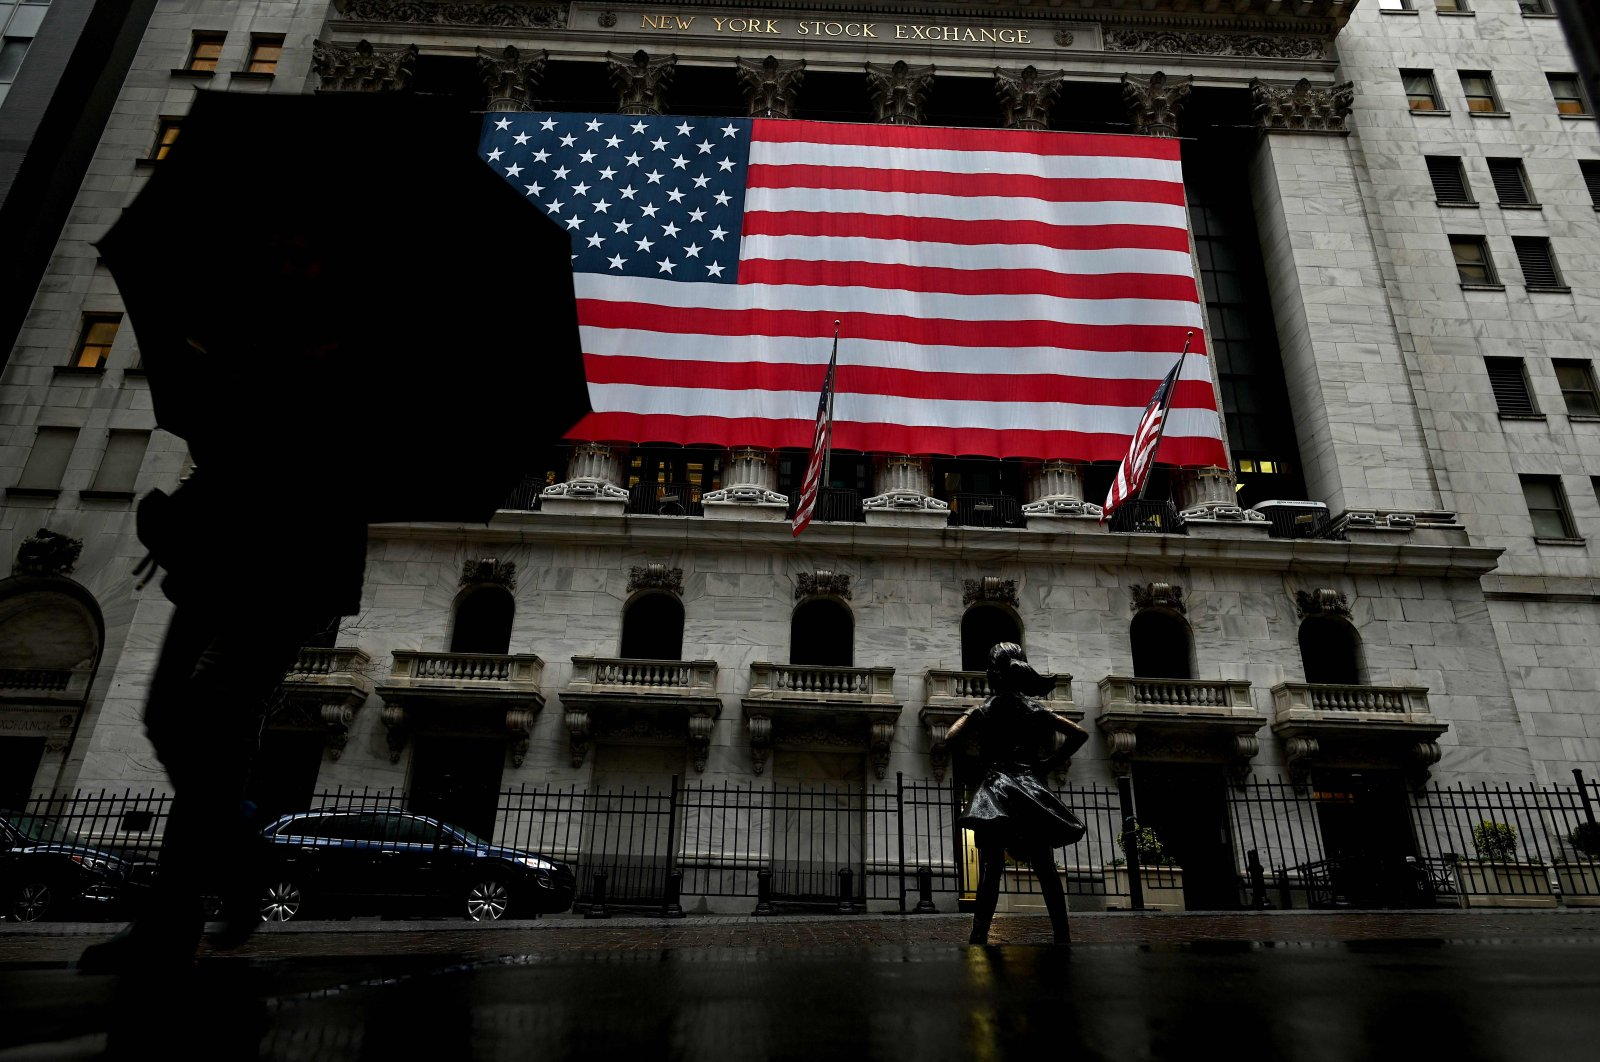 A woman walks past the New York Stock Exchange (NYSE) at Wall Street in New York City on March 19, 2020. (AFP Photo)